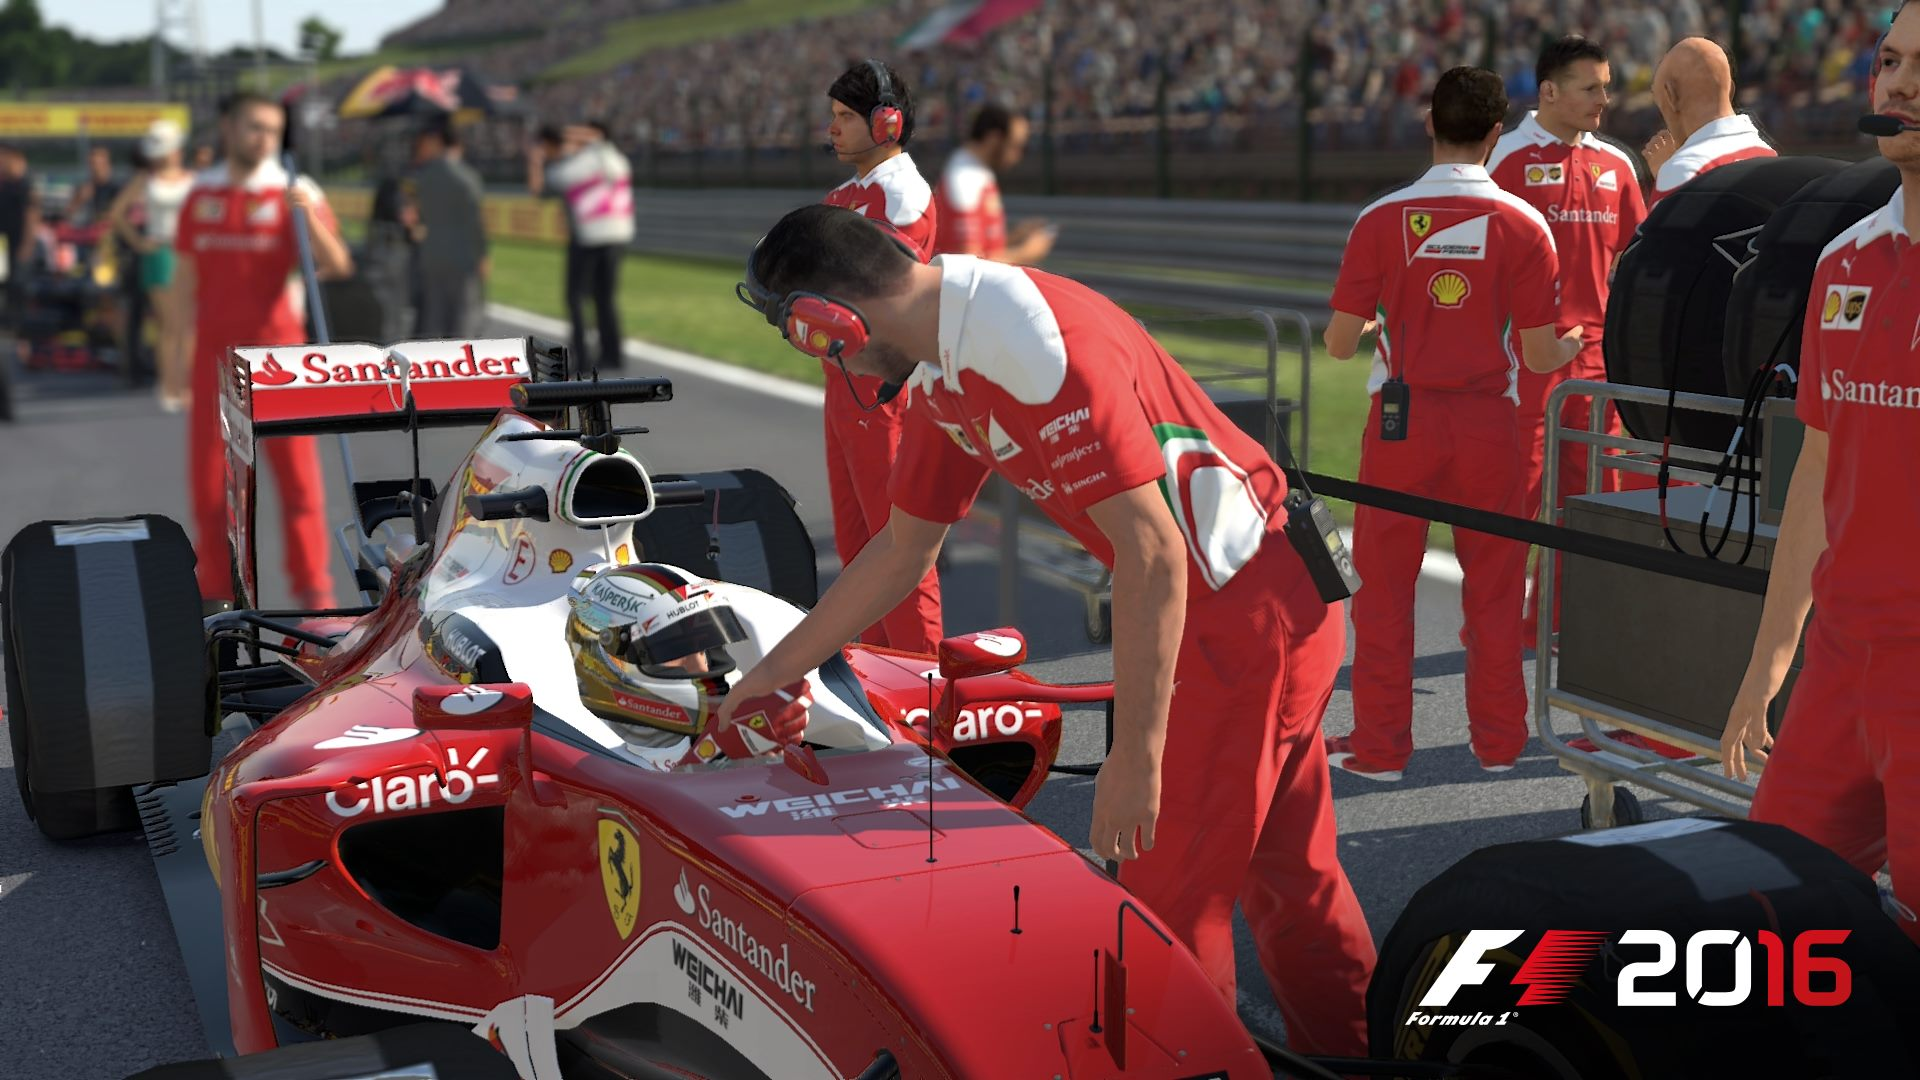 Grand prix legends hd pc review and full download | old pc gaming.